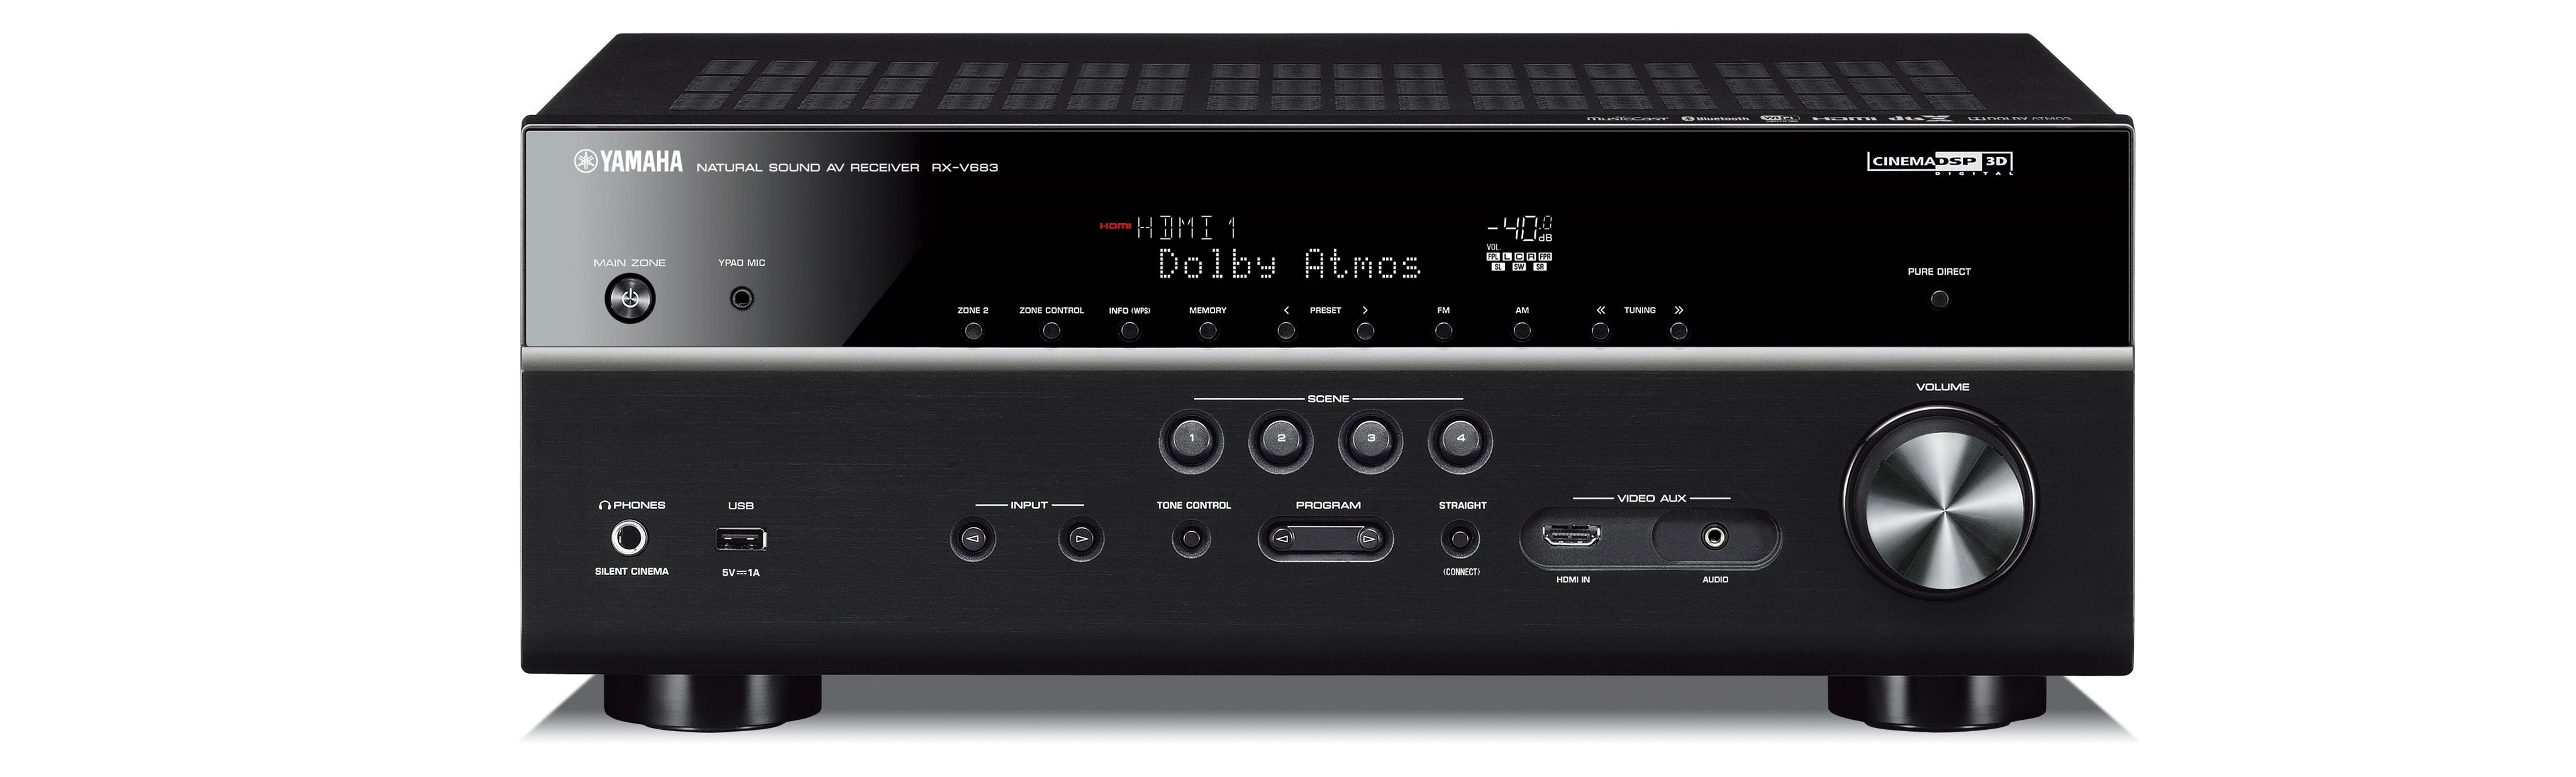 Here is a picture of the Yamaha RX-V683BL AV Receiver